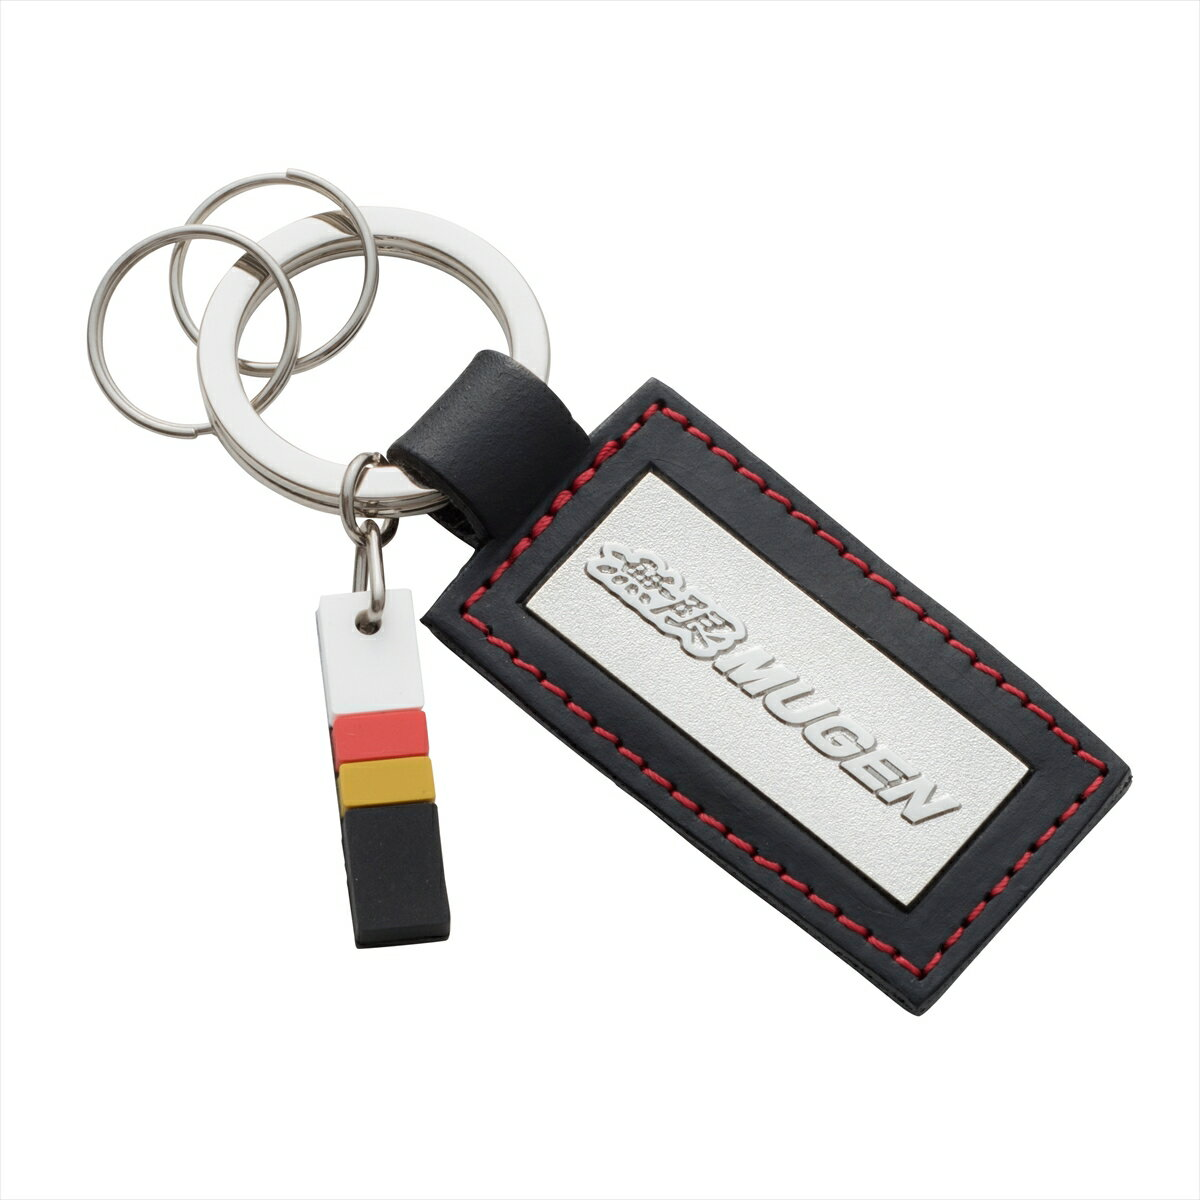 "MUGEN KEY HOLDER""A"" (LEATHER)"